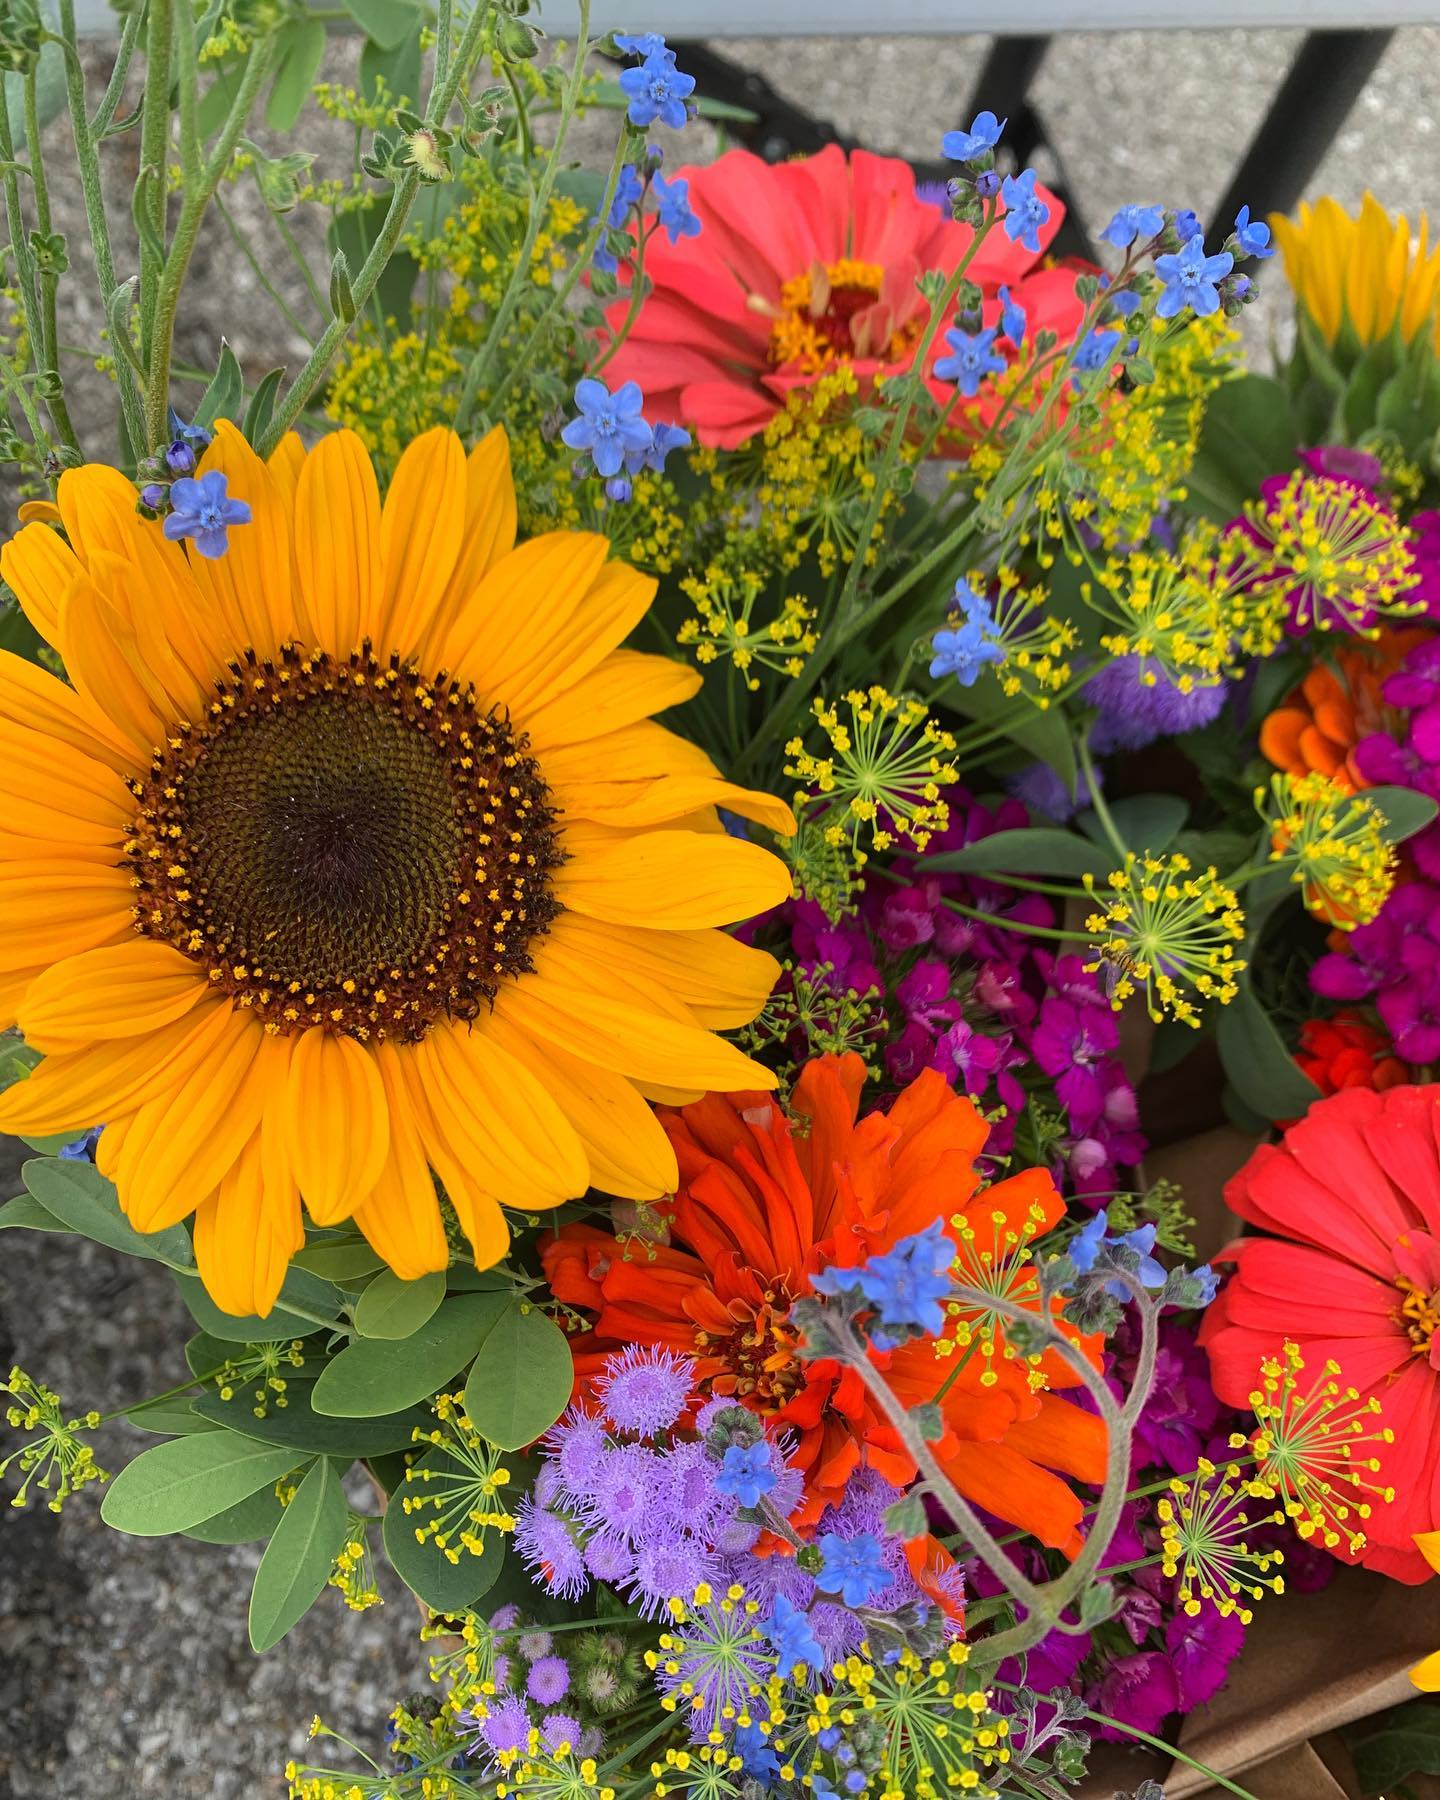 bucket of bouquets with rainbow colors featuring sunflowers, cynoglossum and zinnias